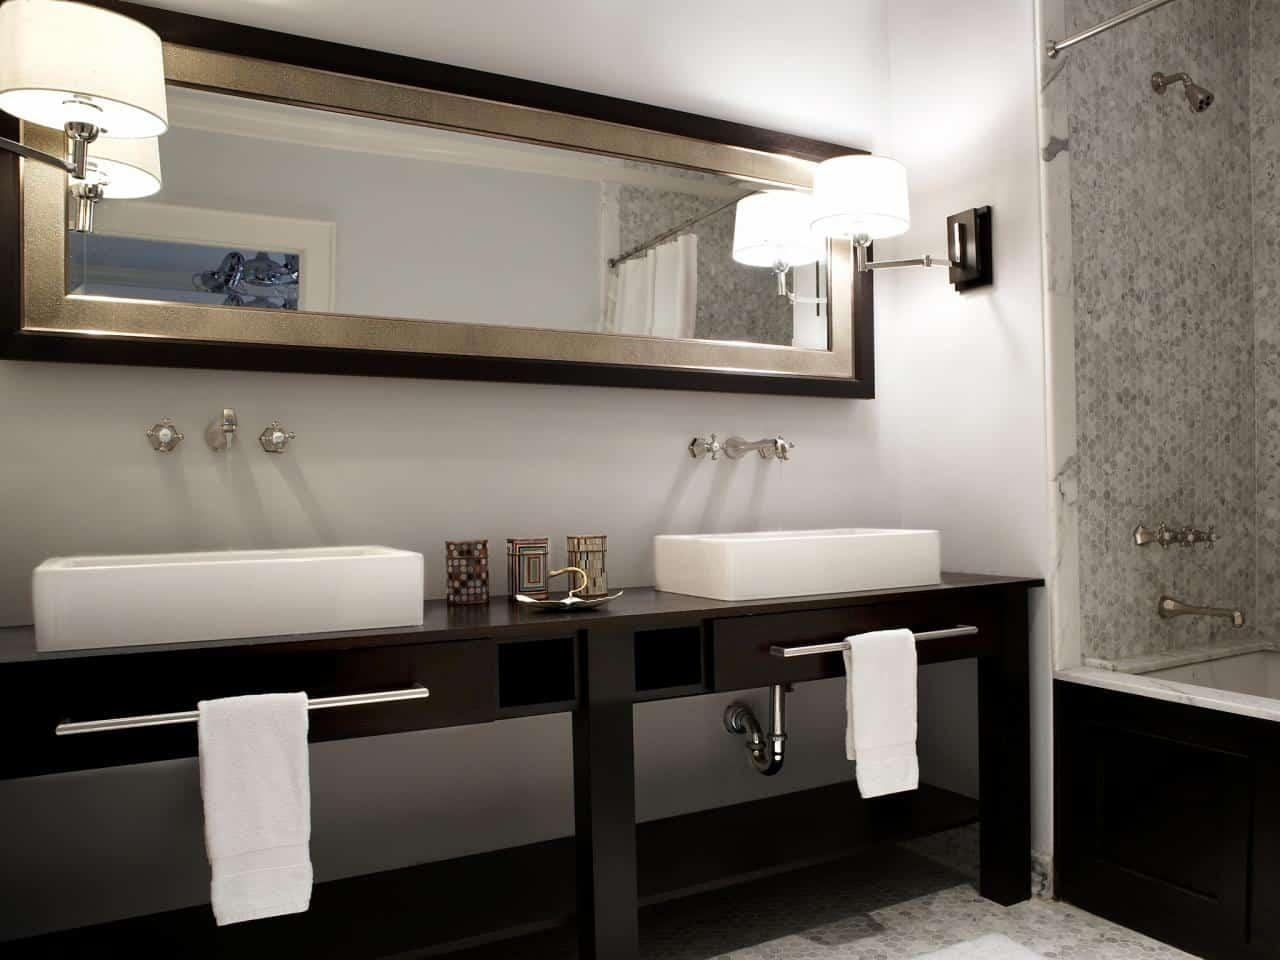 Double Vanity Bathroom Mirrors Home And Design Gallery Within How In Bathroom Mirrors Ideas With Vanity (Image 16 of 20)